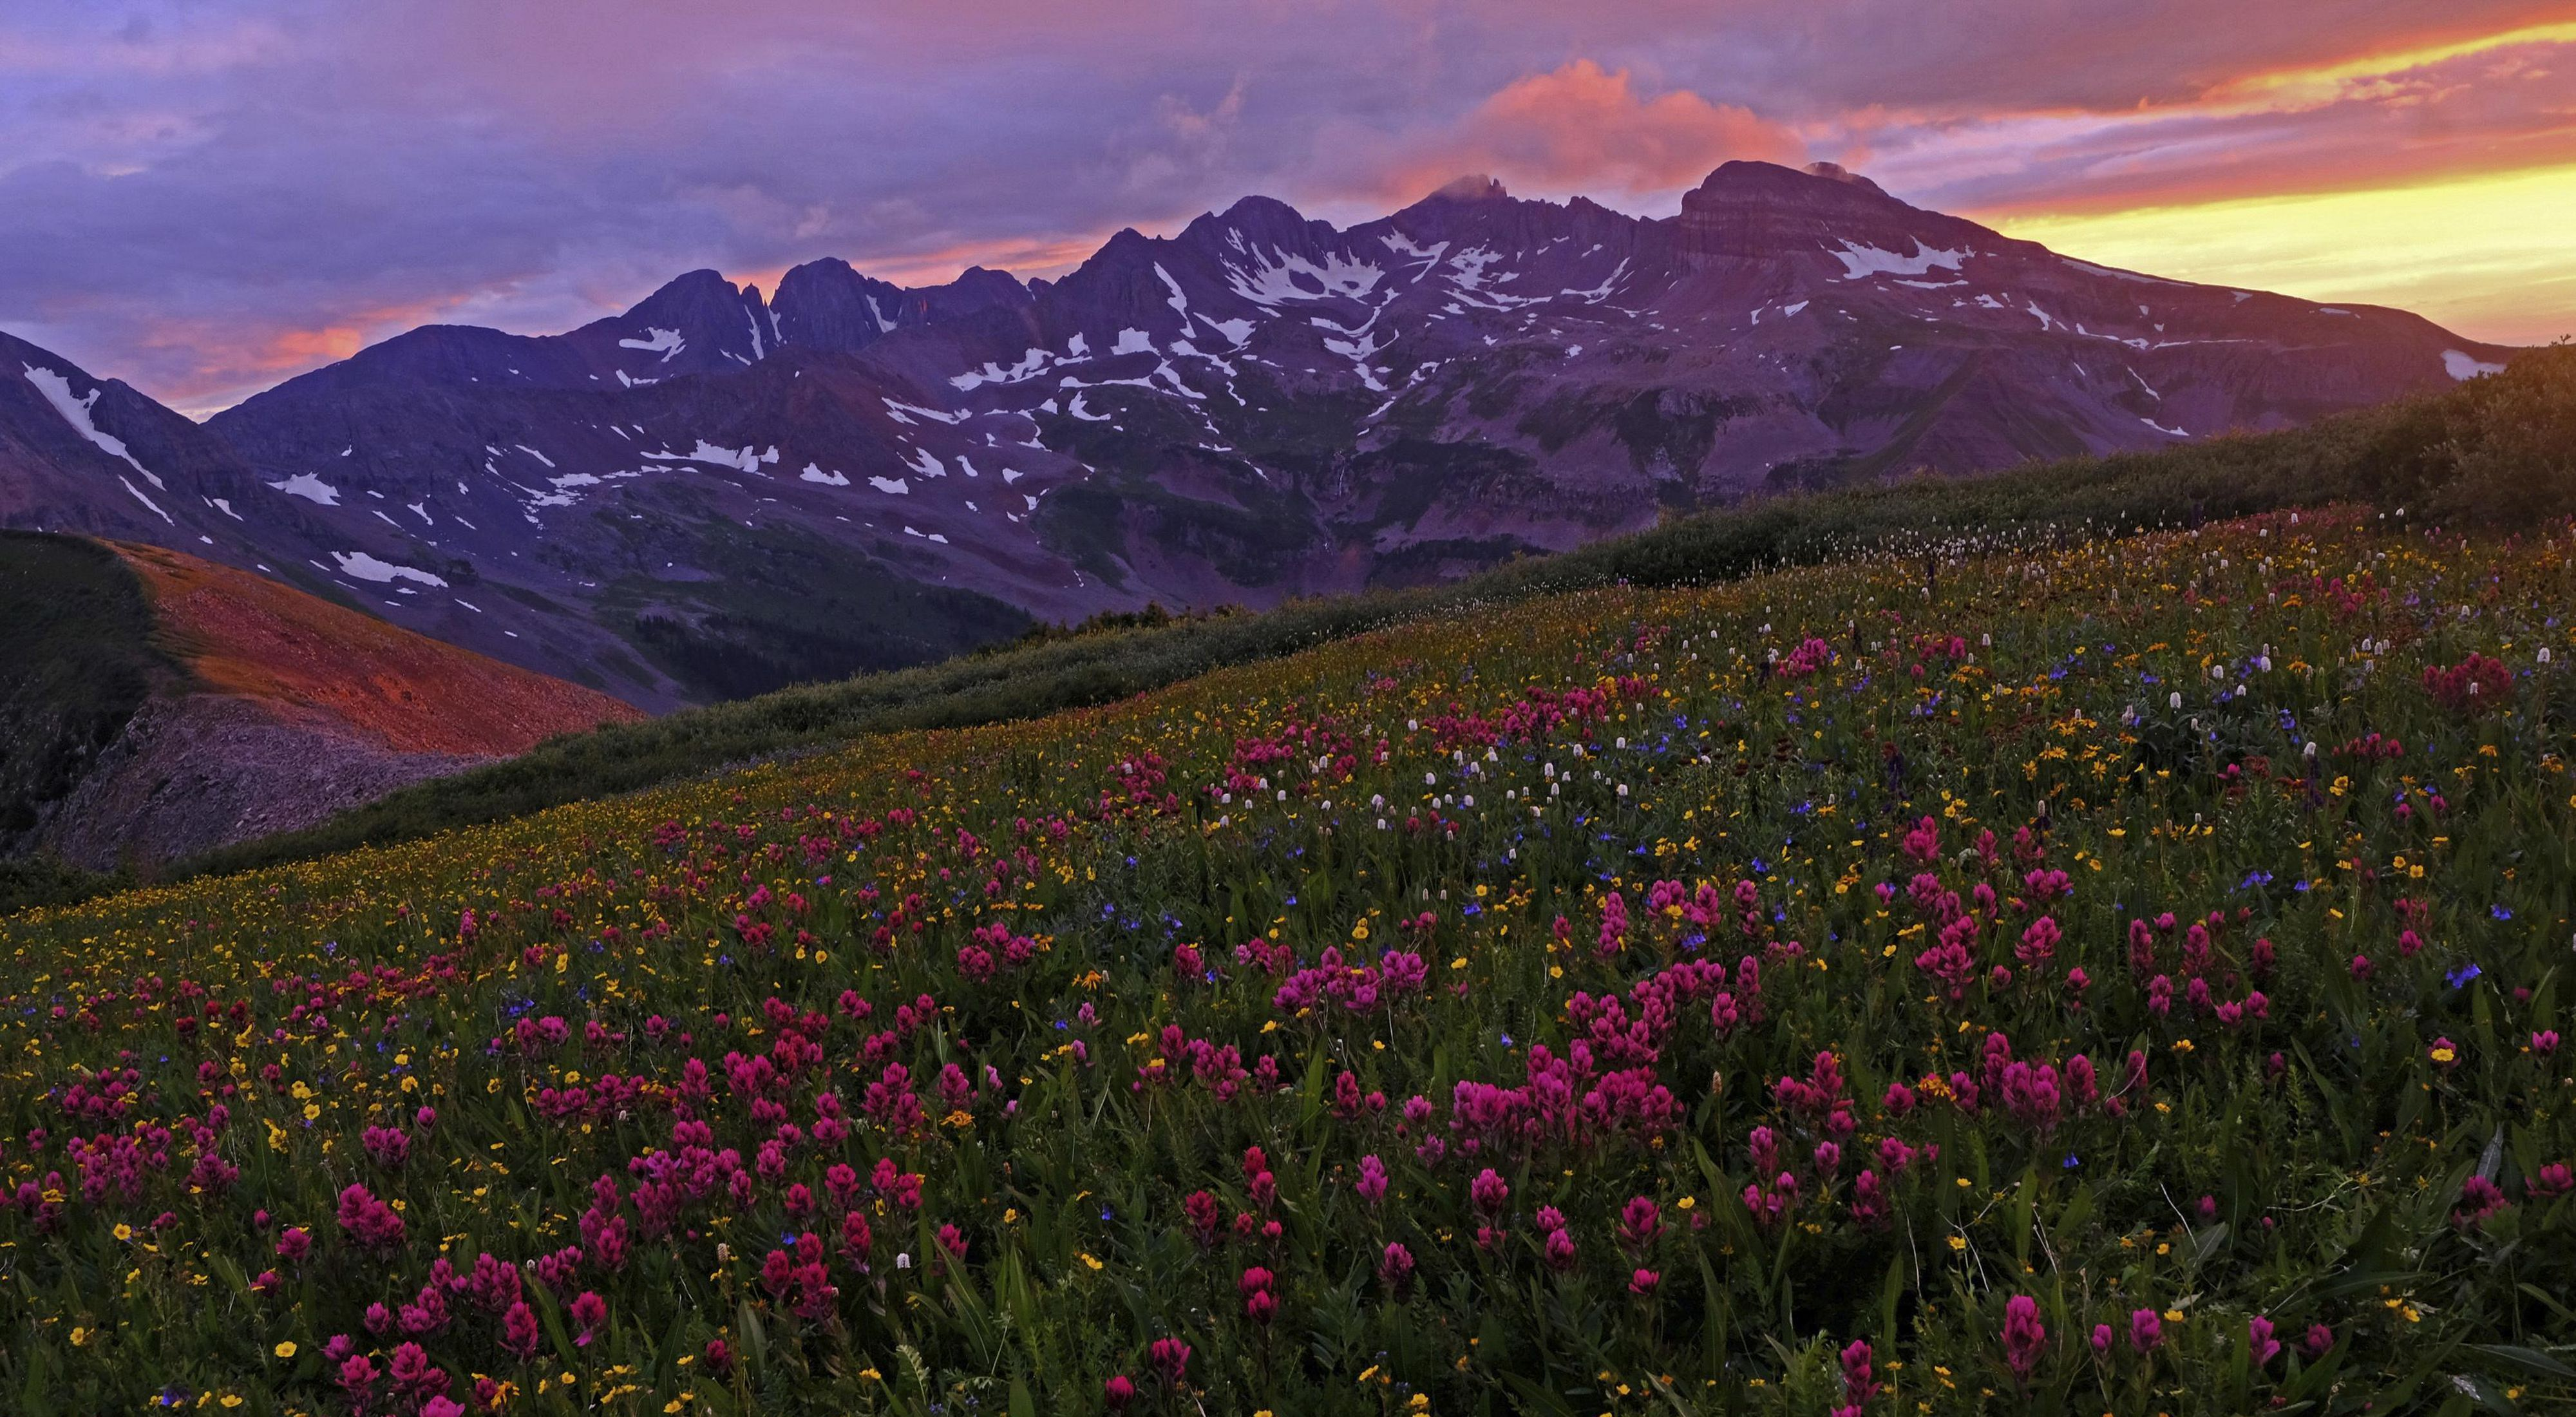 Colorado mountain range with wildflowers in the foreground.